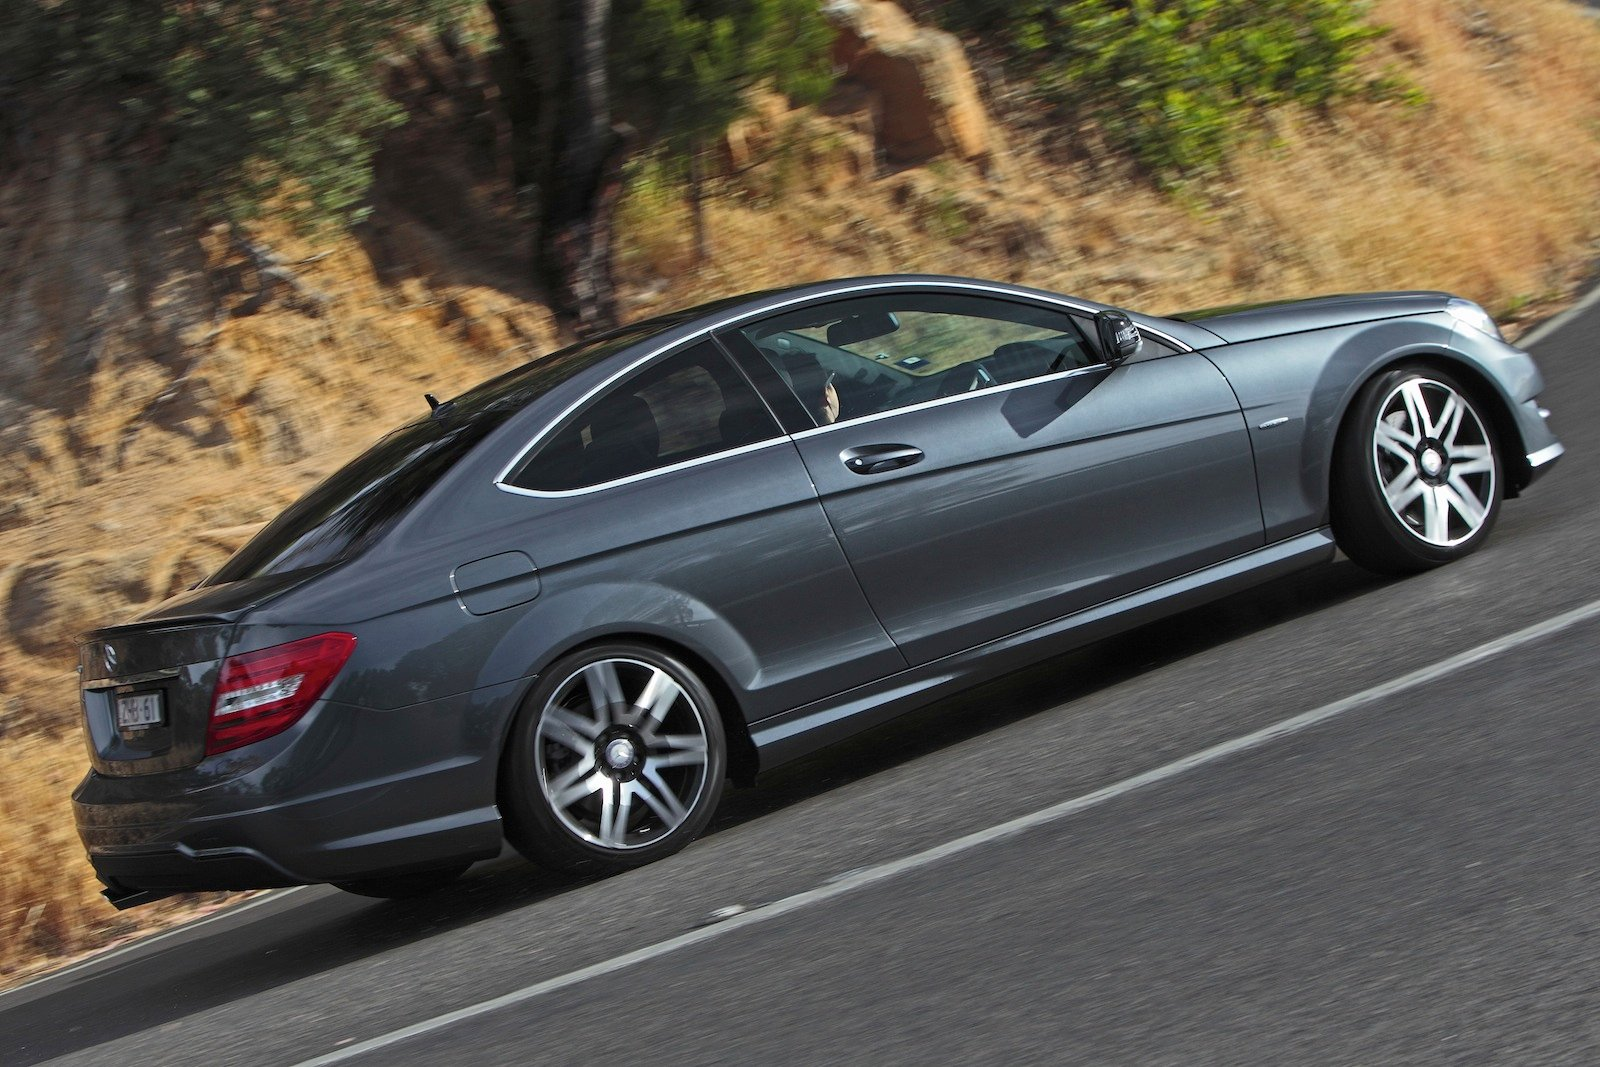 Mercedes Benz C250 Coupe Sport Review Caradvice